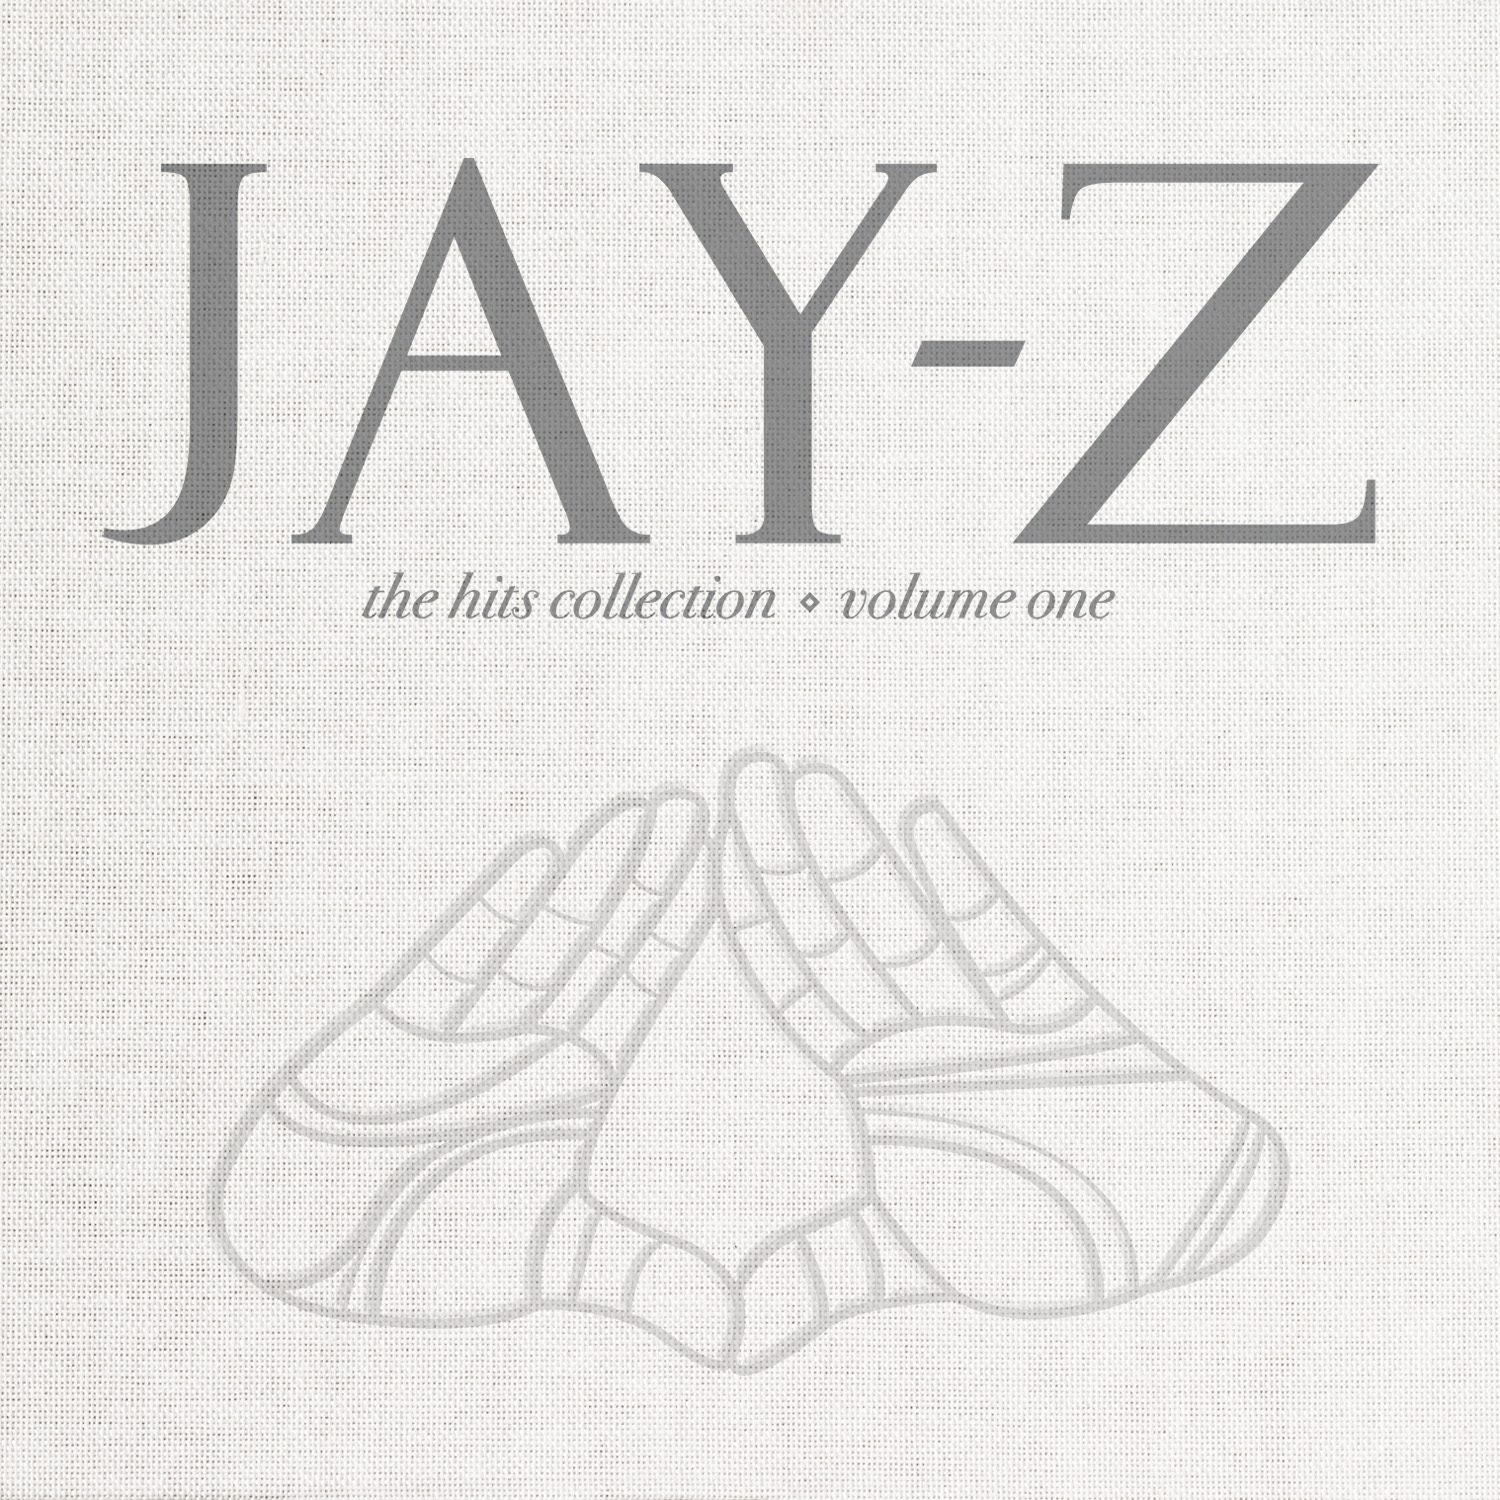 jay-z the hits collection high resolution